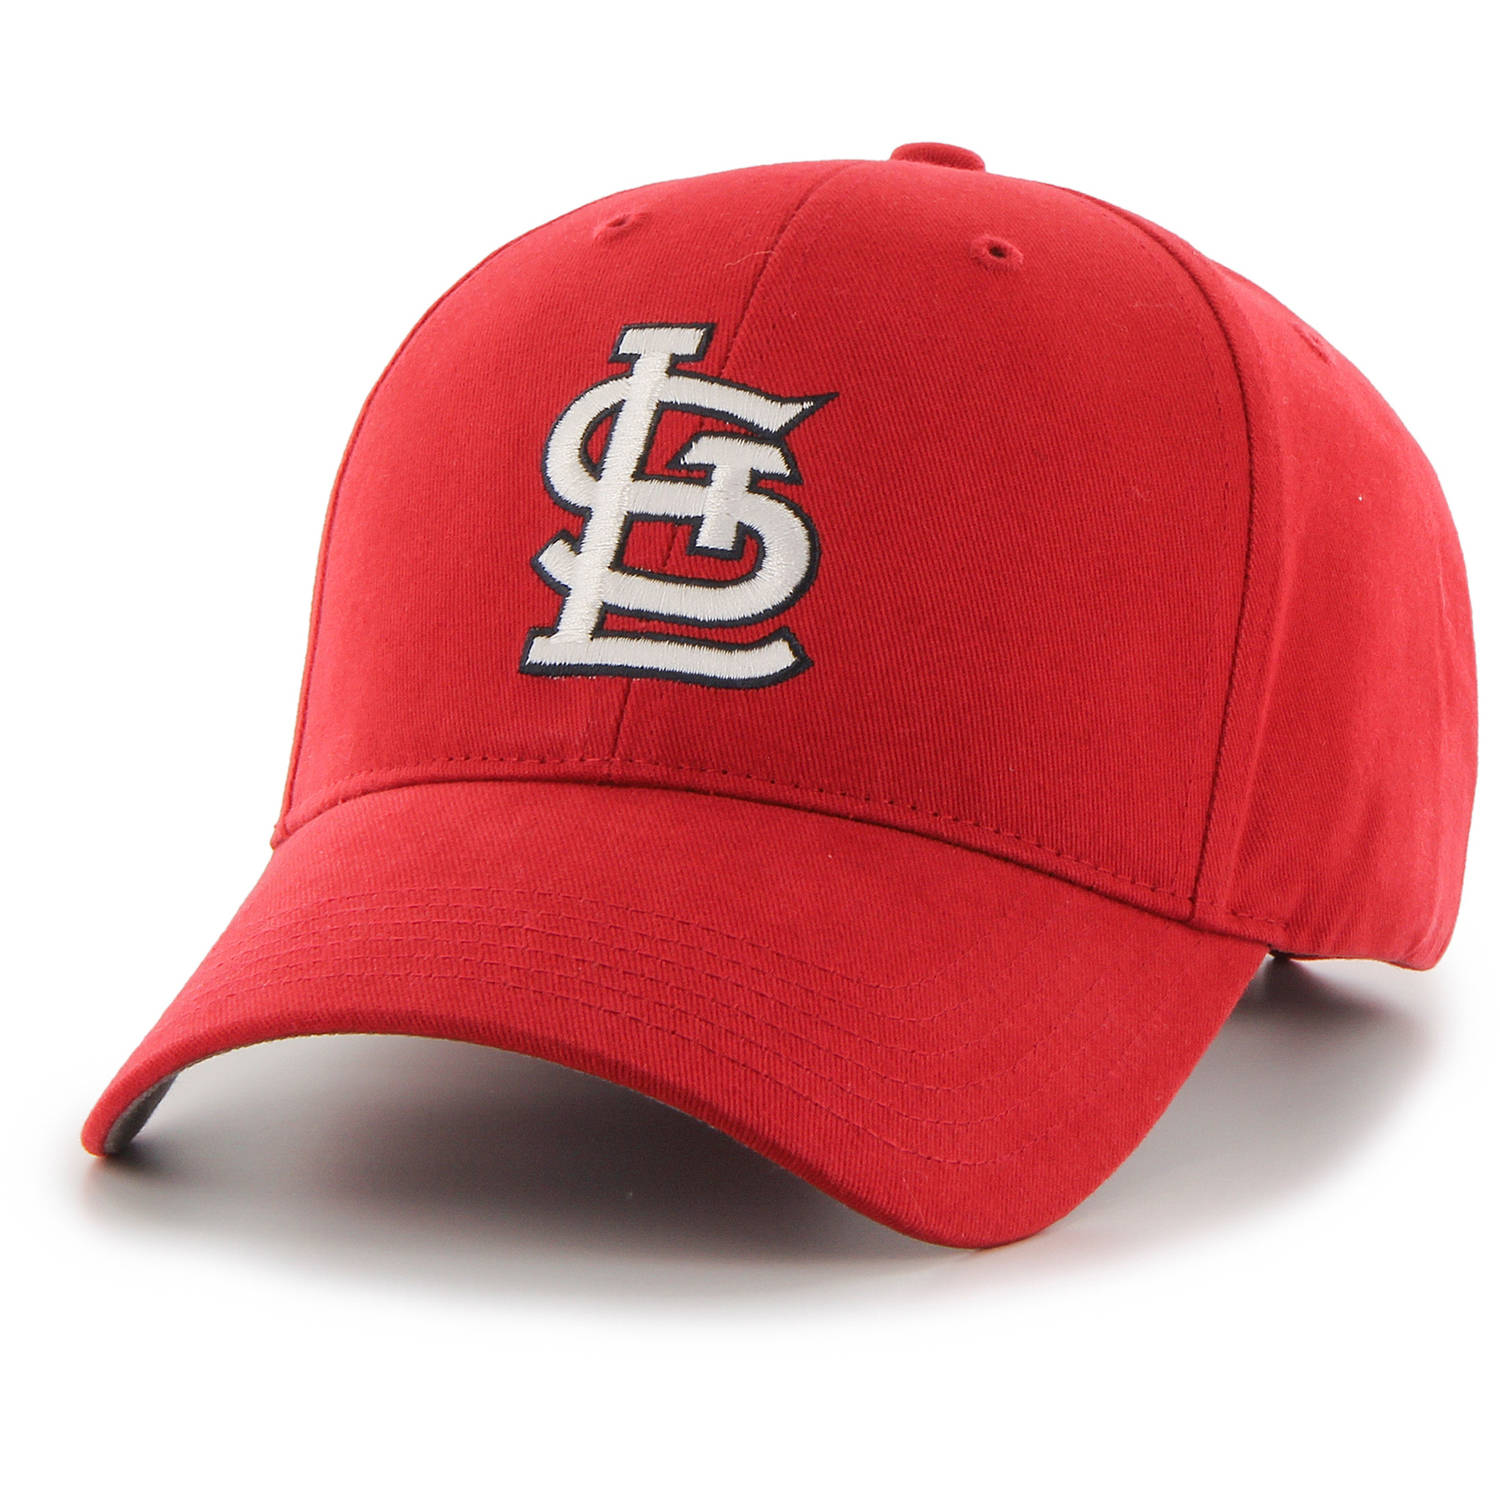 75fc6d2c281 MLB St. Louis Cardinals Fan Favorite Youth Adjustable Baseball Cap